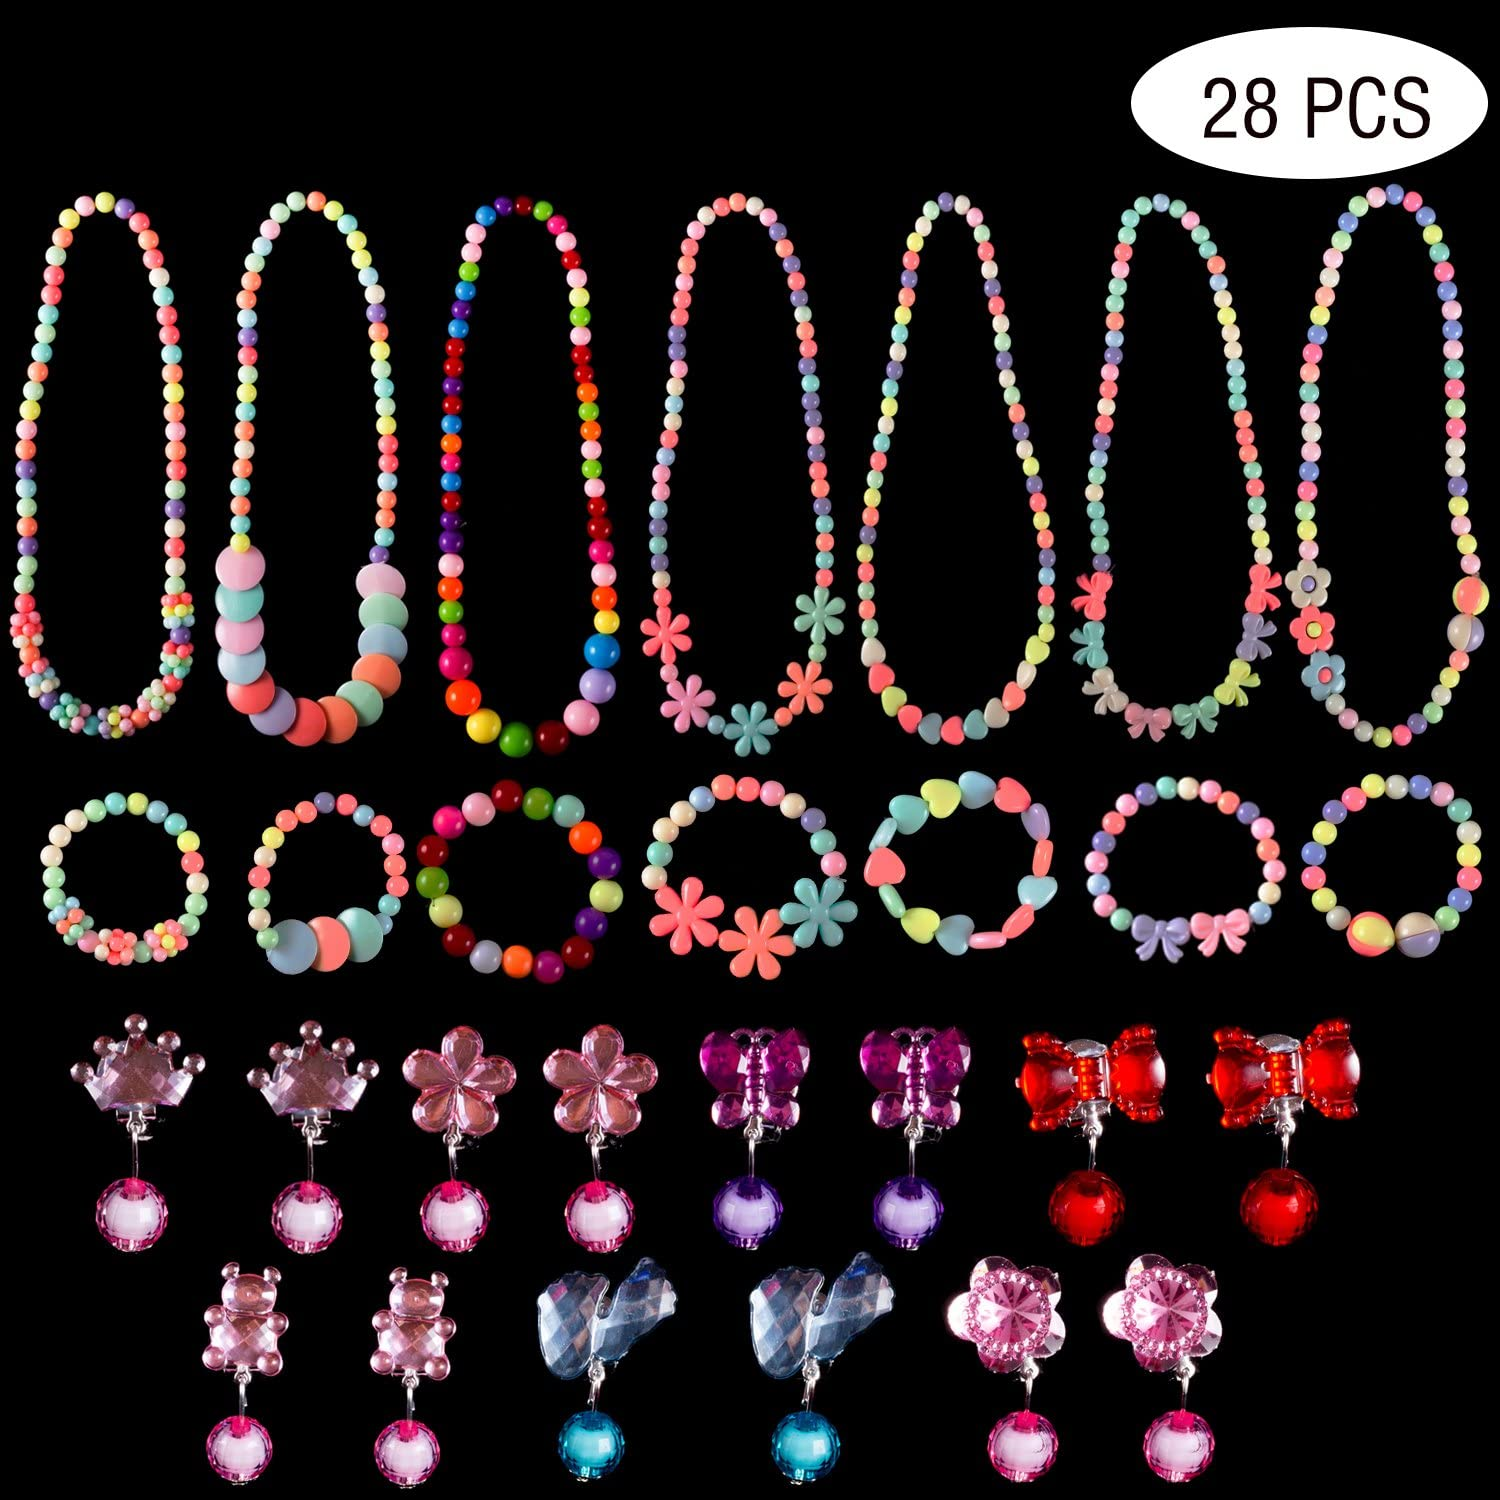 An image of princess jewelry set in various colors and designs.